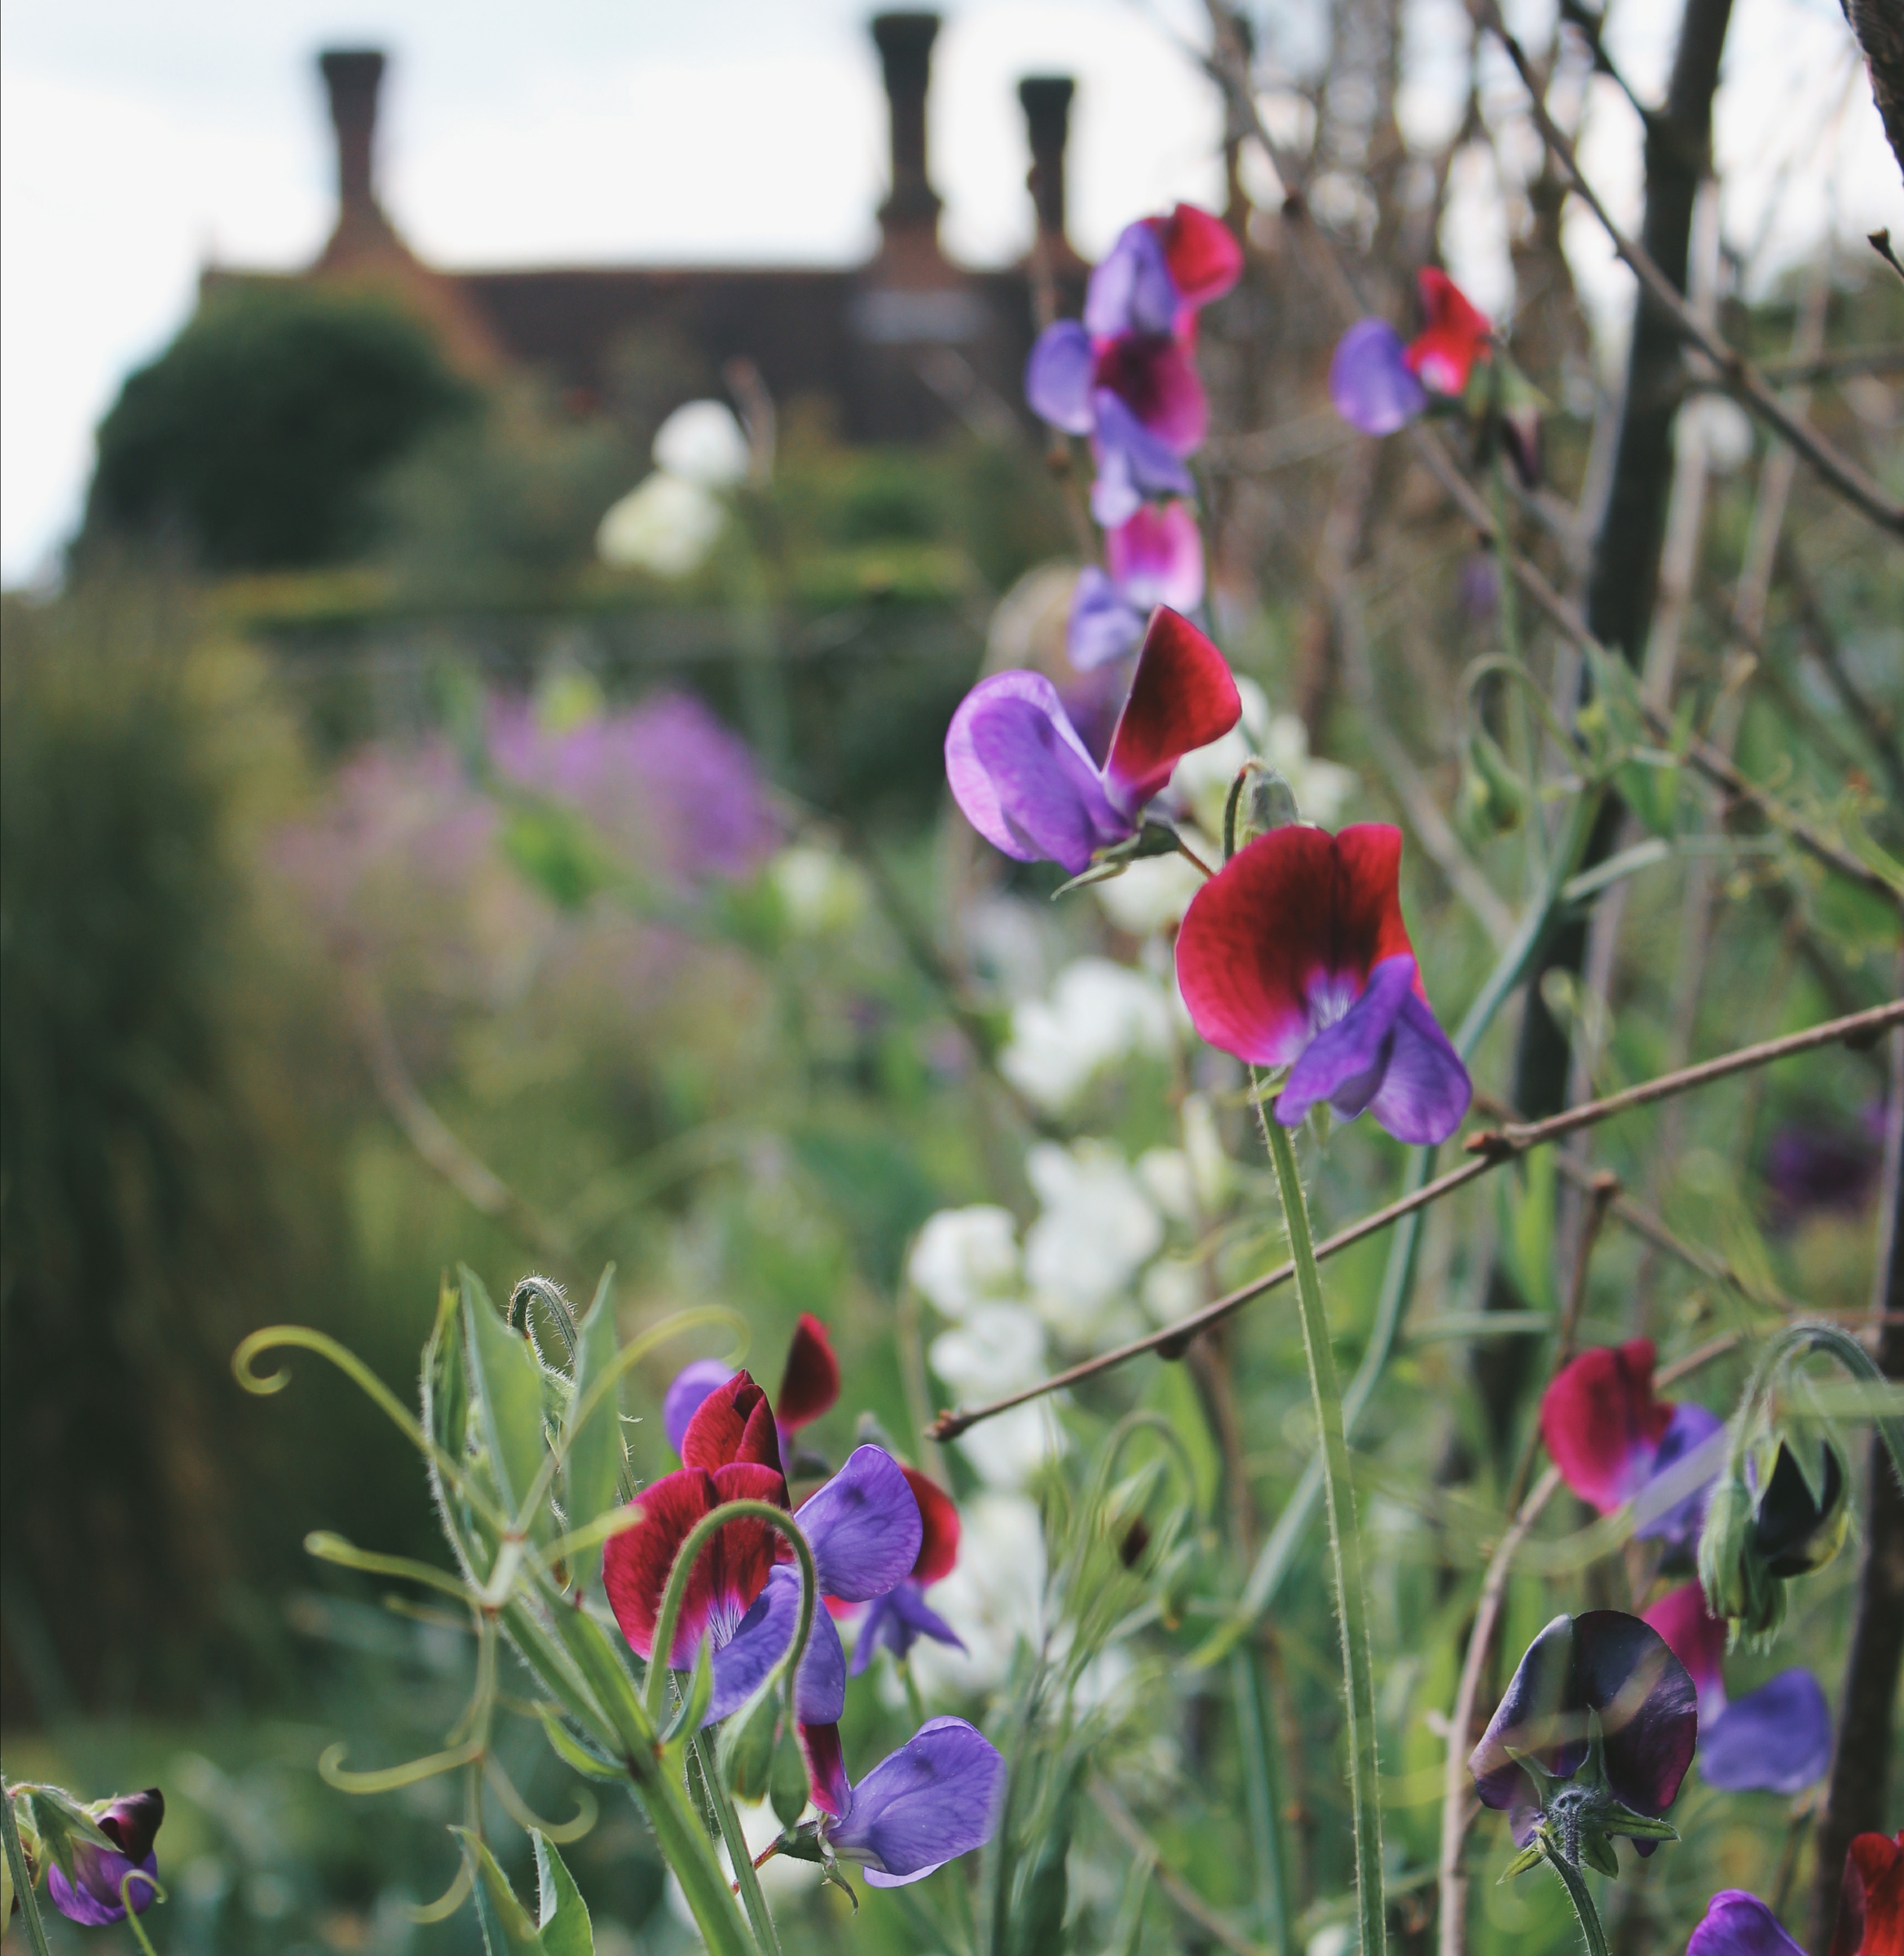 old fashioned sweet peas at Sissinghurst Castle Garden:'En Masse'